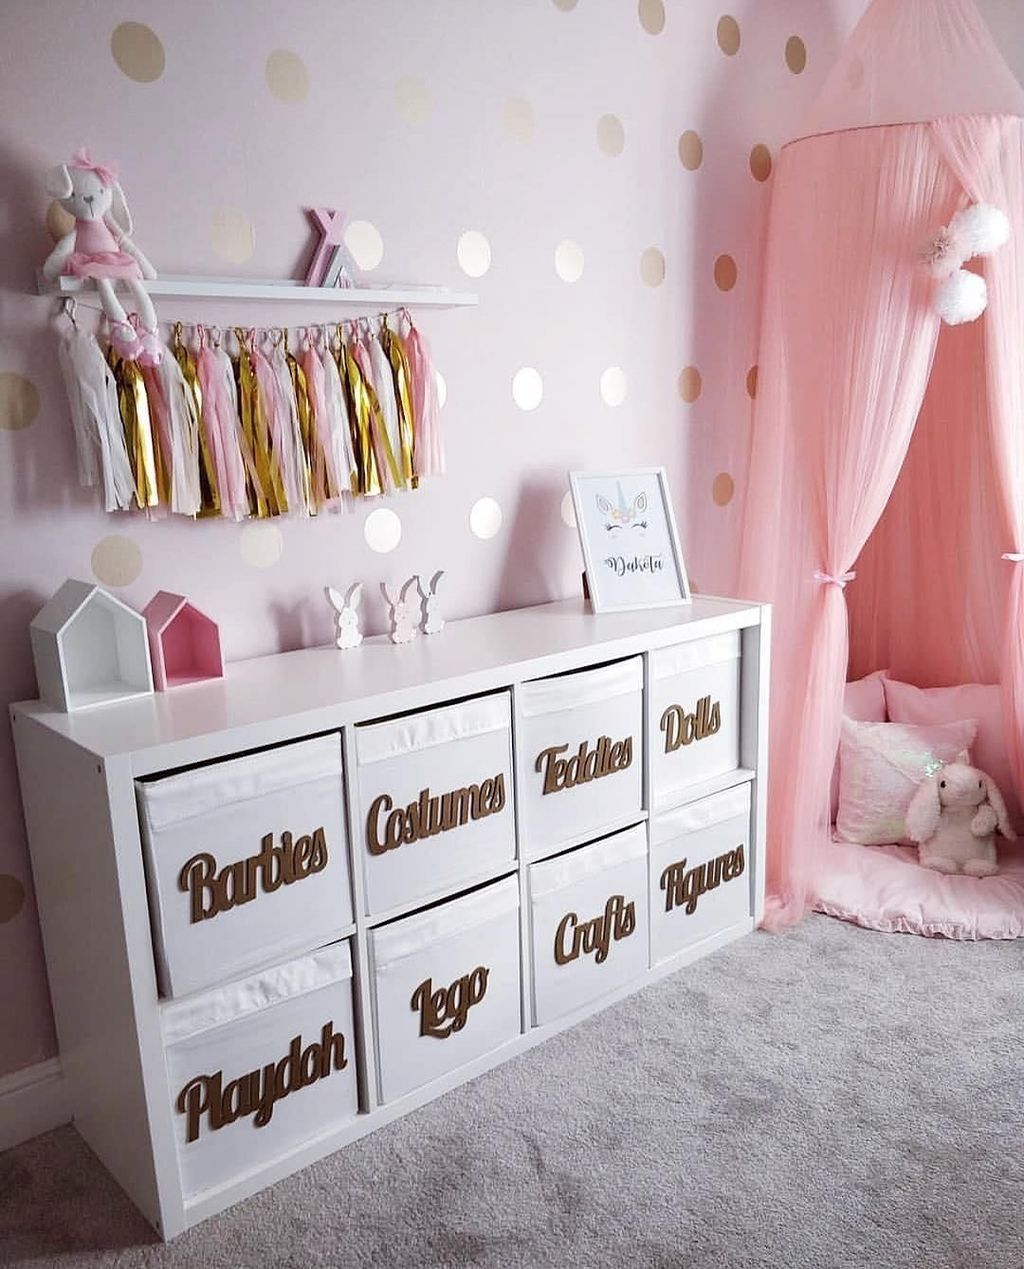 37 Affordable Kids Room Design Ideas To Inspire Today